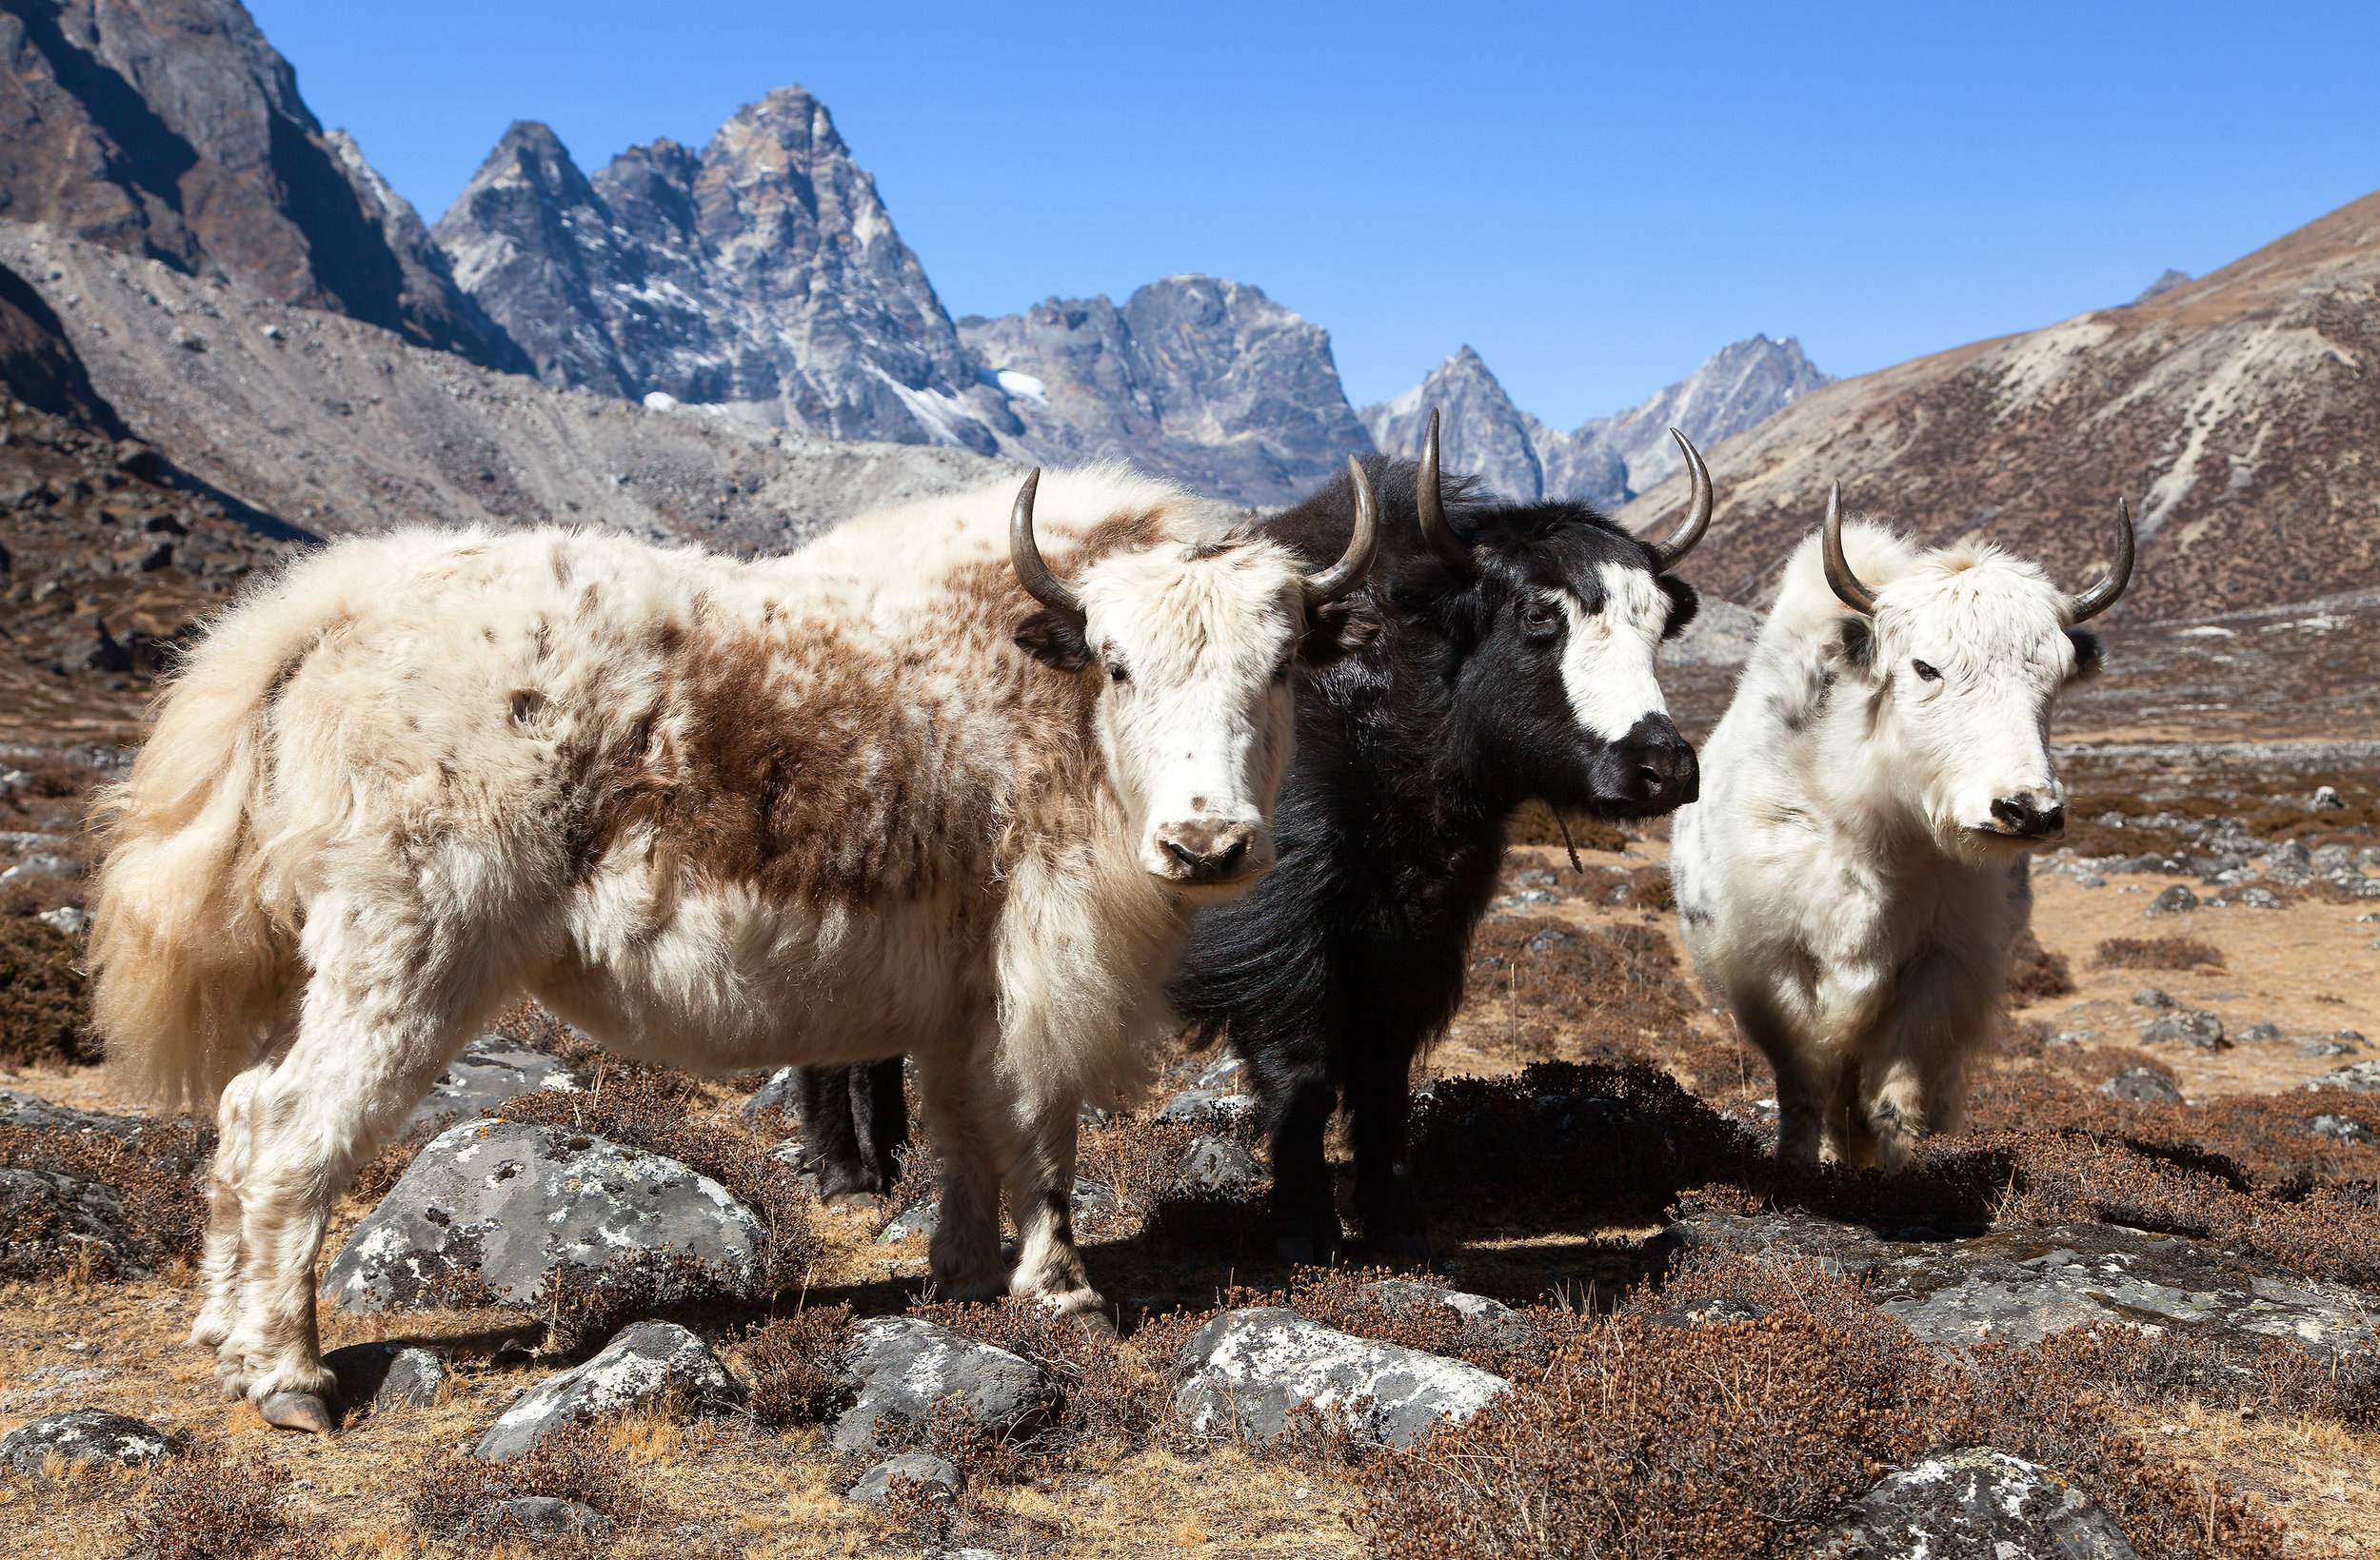 nepal_himalaya_bigstock-Yak-Group-Of-Thee-Yaks-On-The-237927508.jpg